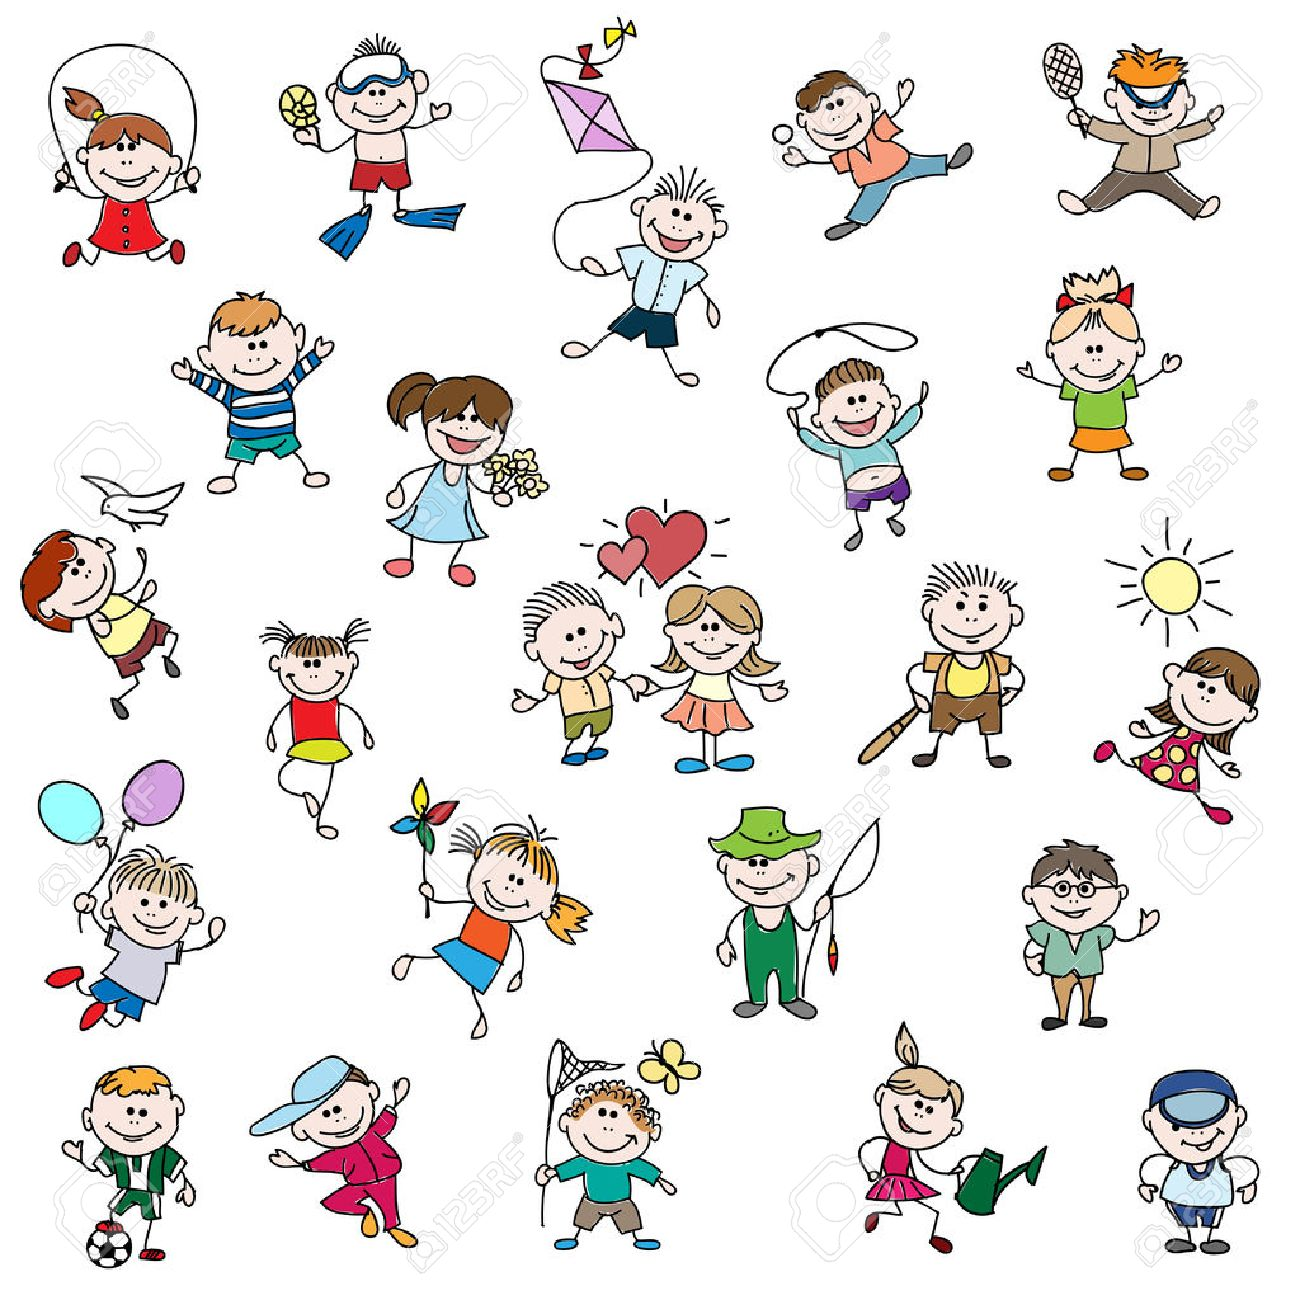 childrens drawings of doodle people children girl and boy cartoon drawing childhood play